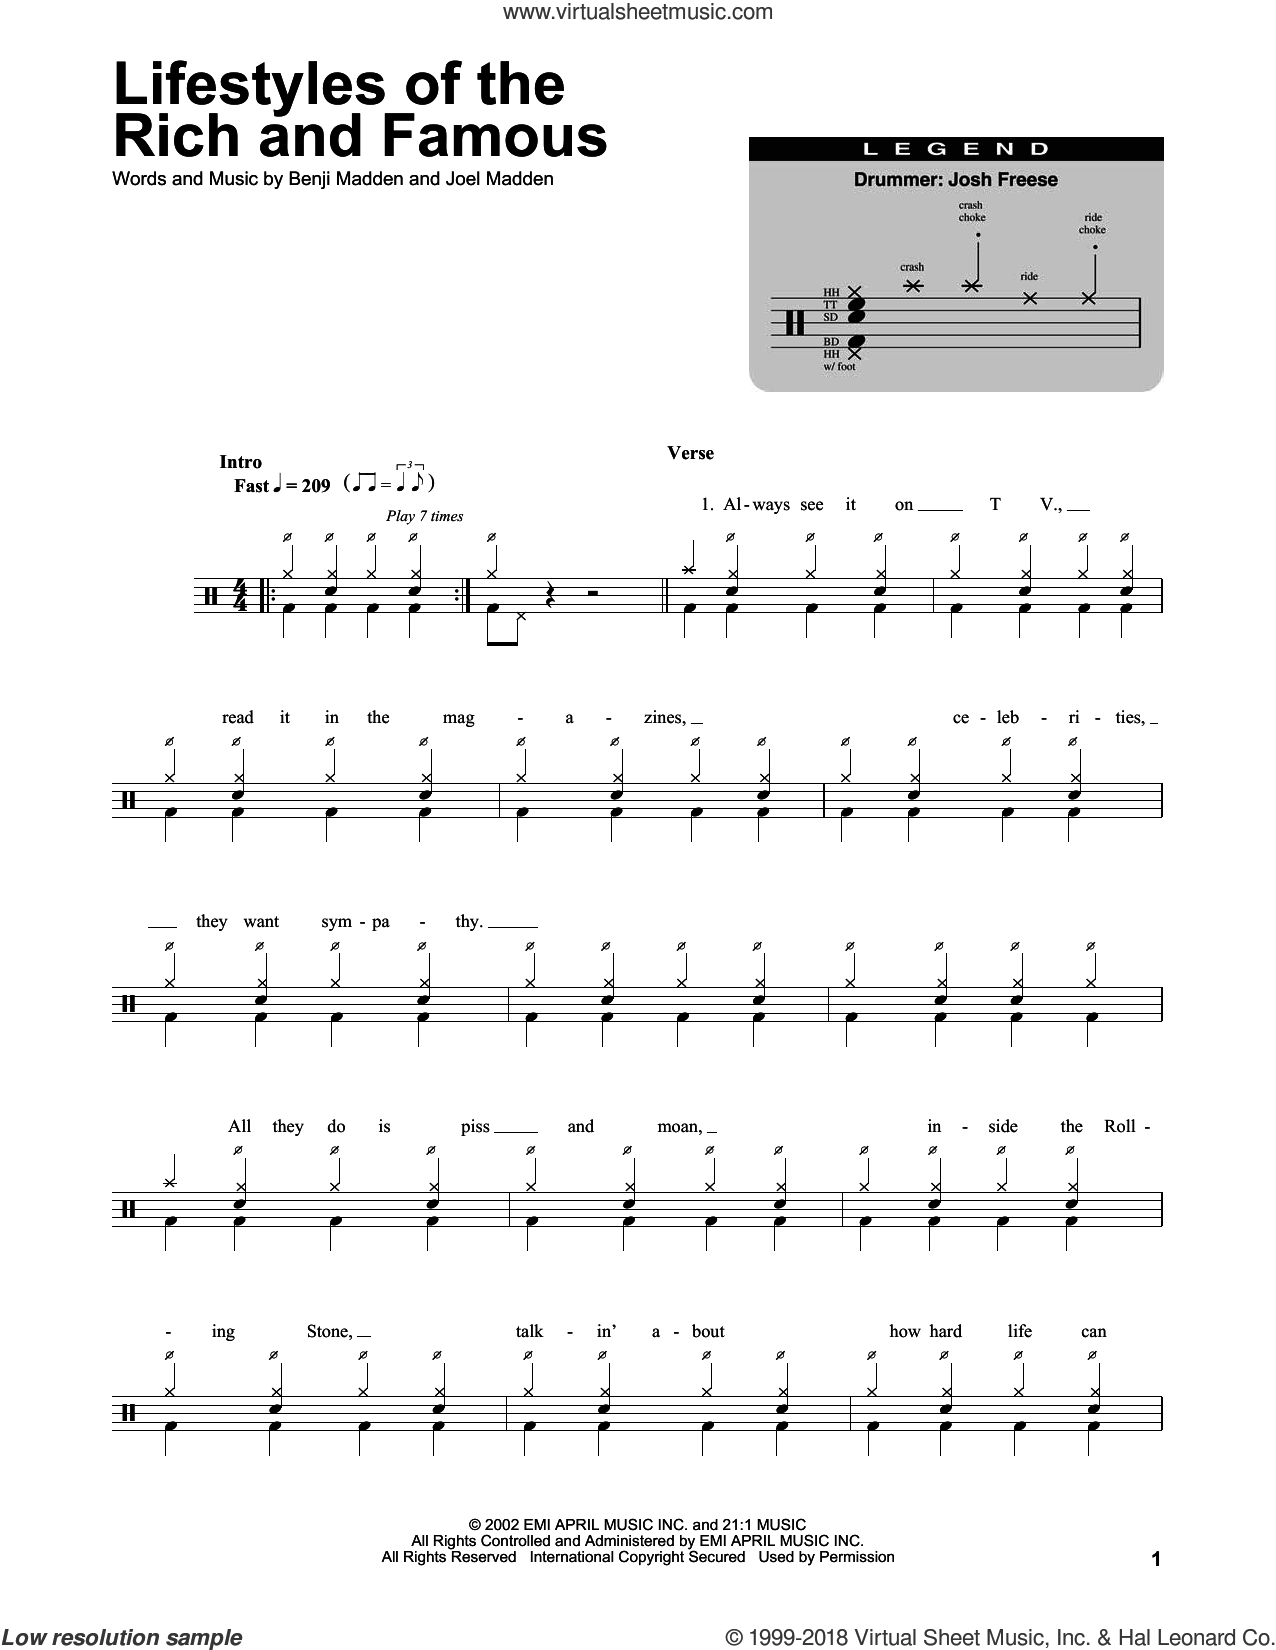 Lifestyles Of The Rich And Famous sheet music for drums by Joel Madden and Benji Madden. Score Image Preview.